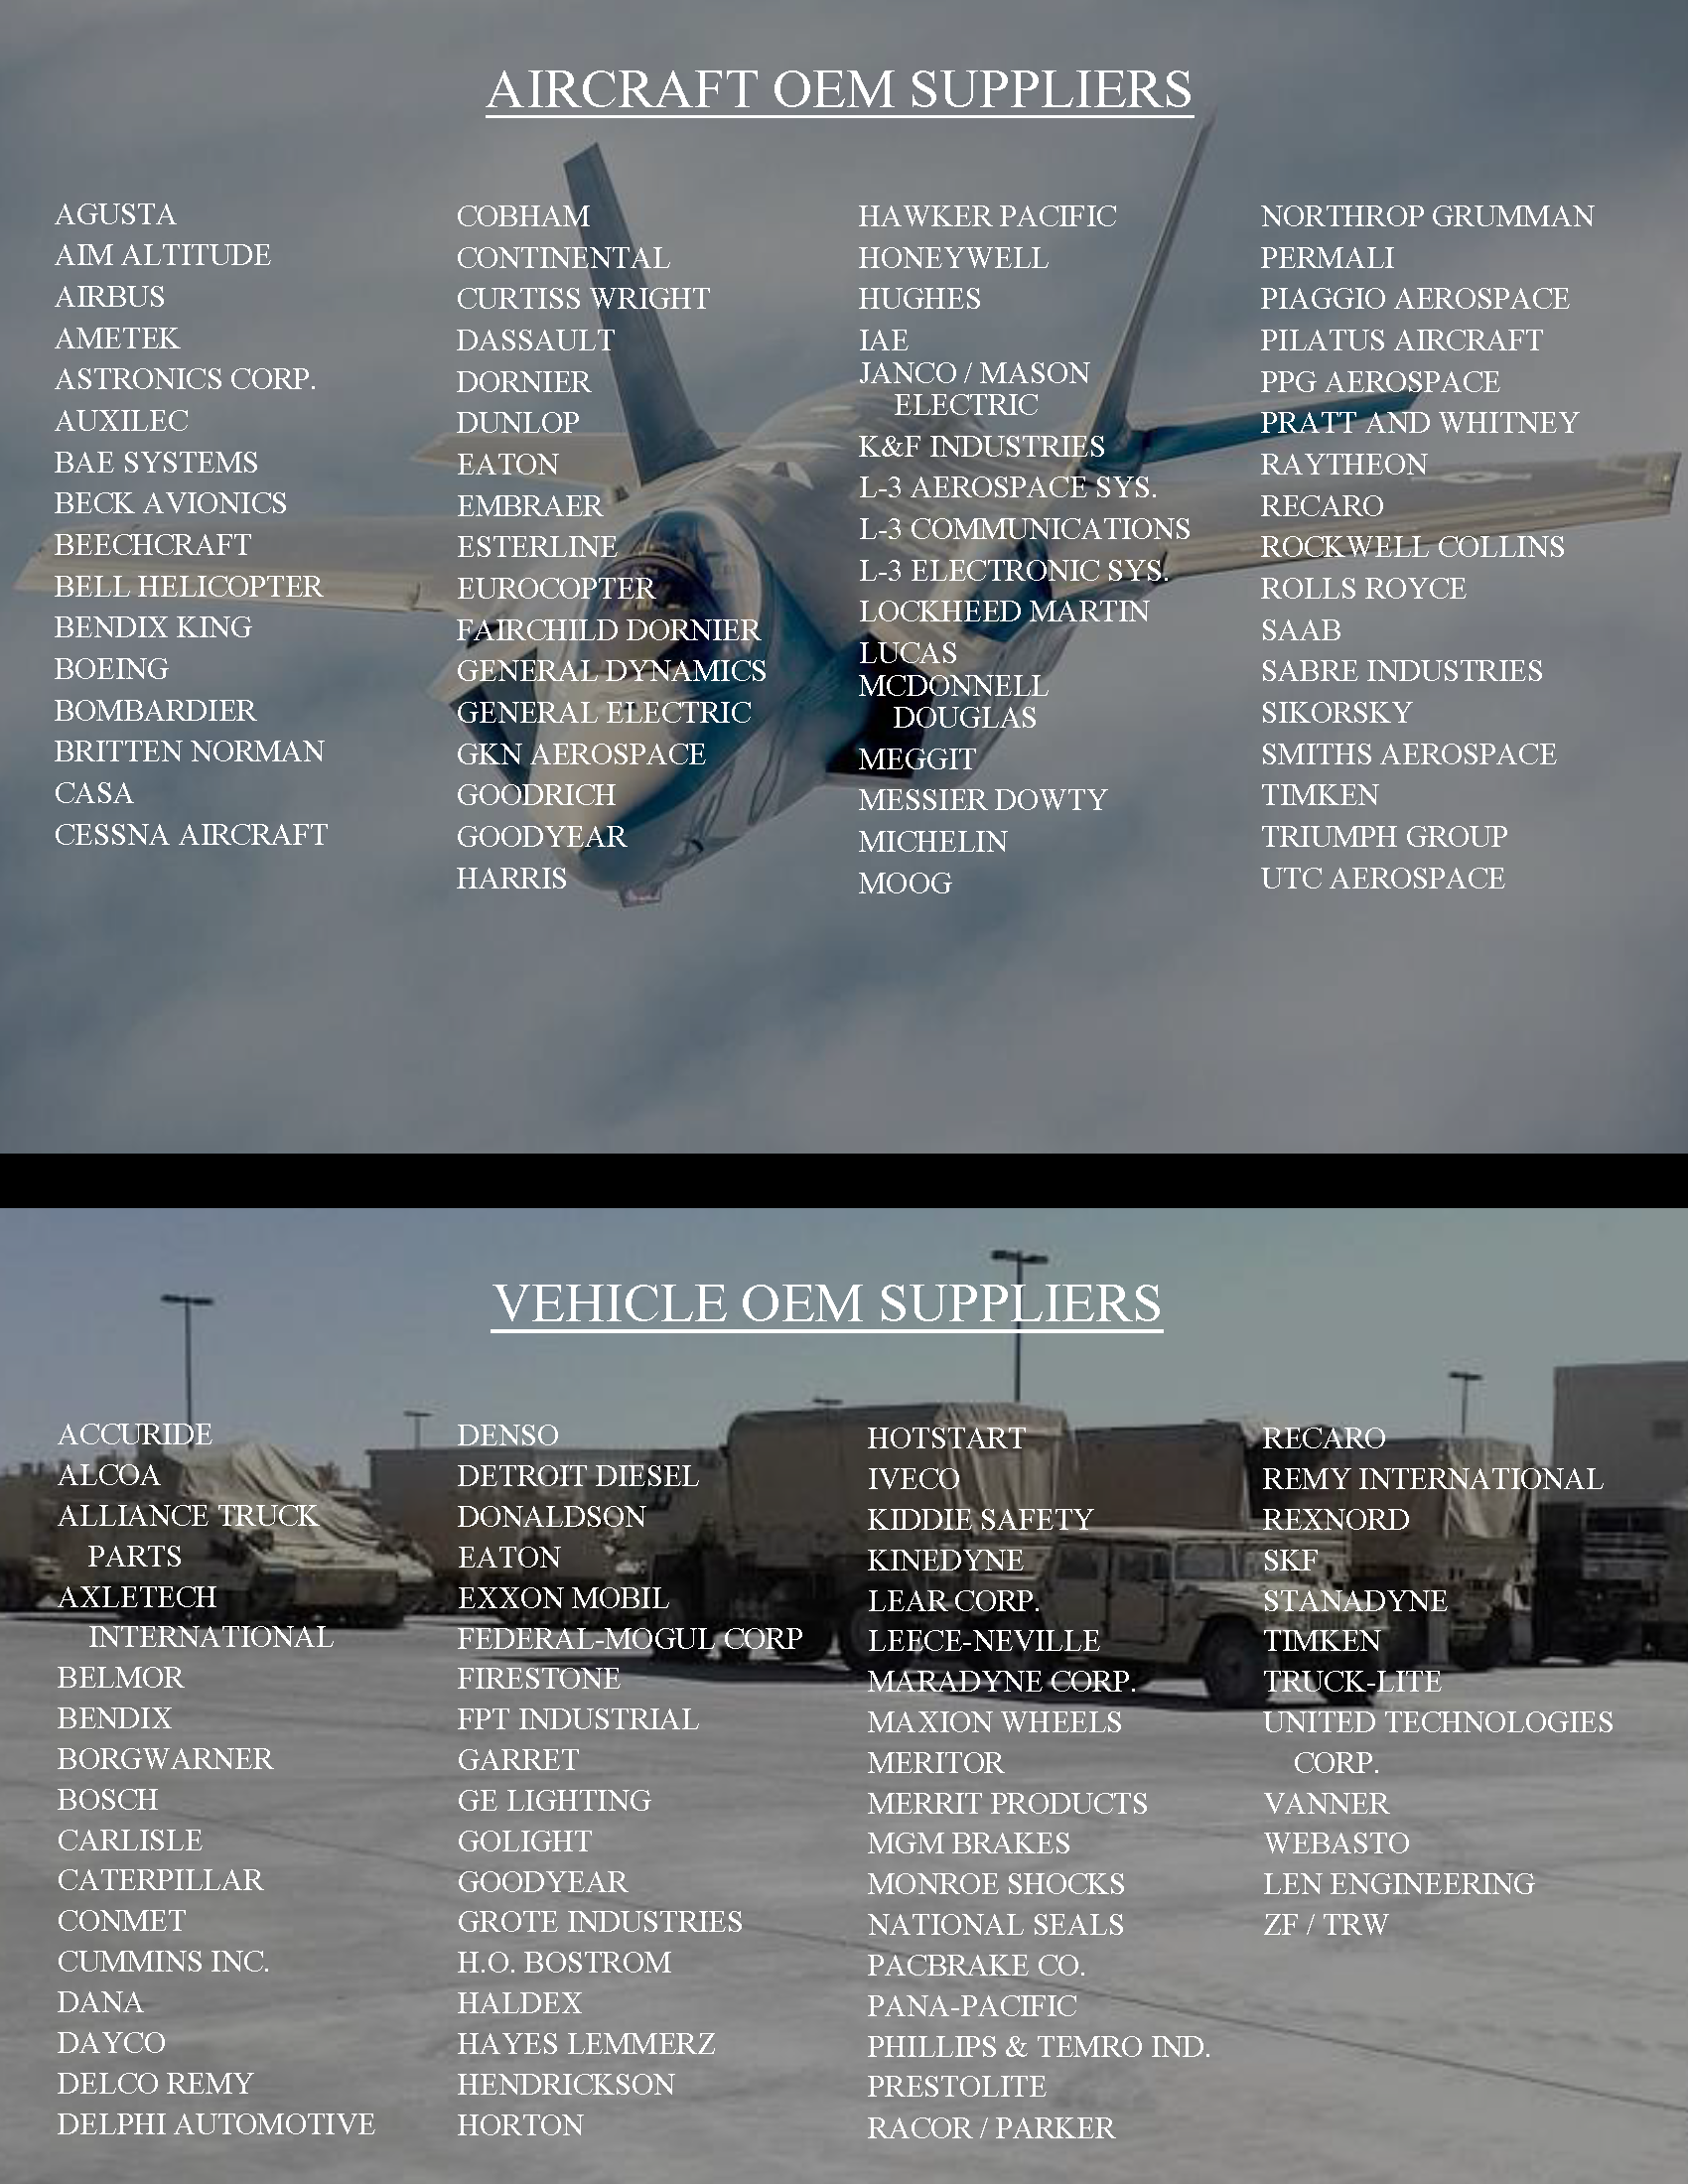 aircraft and vehicle oems